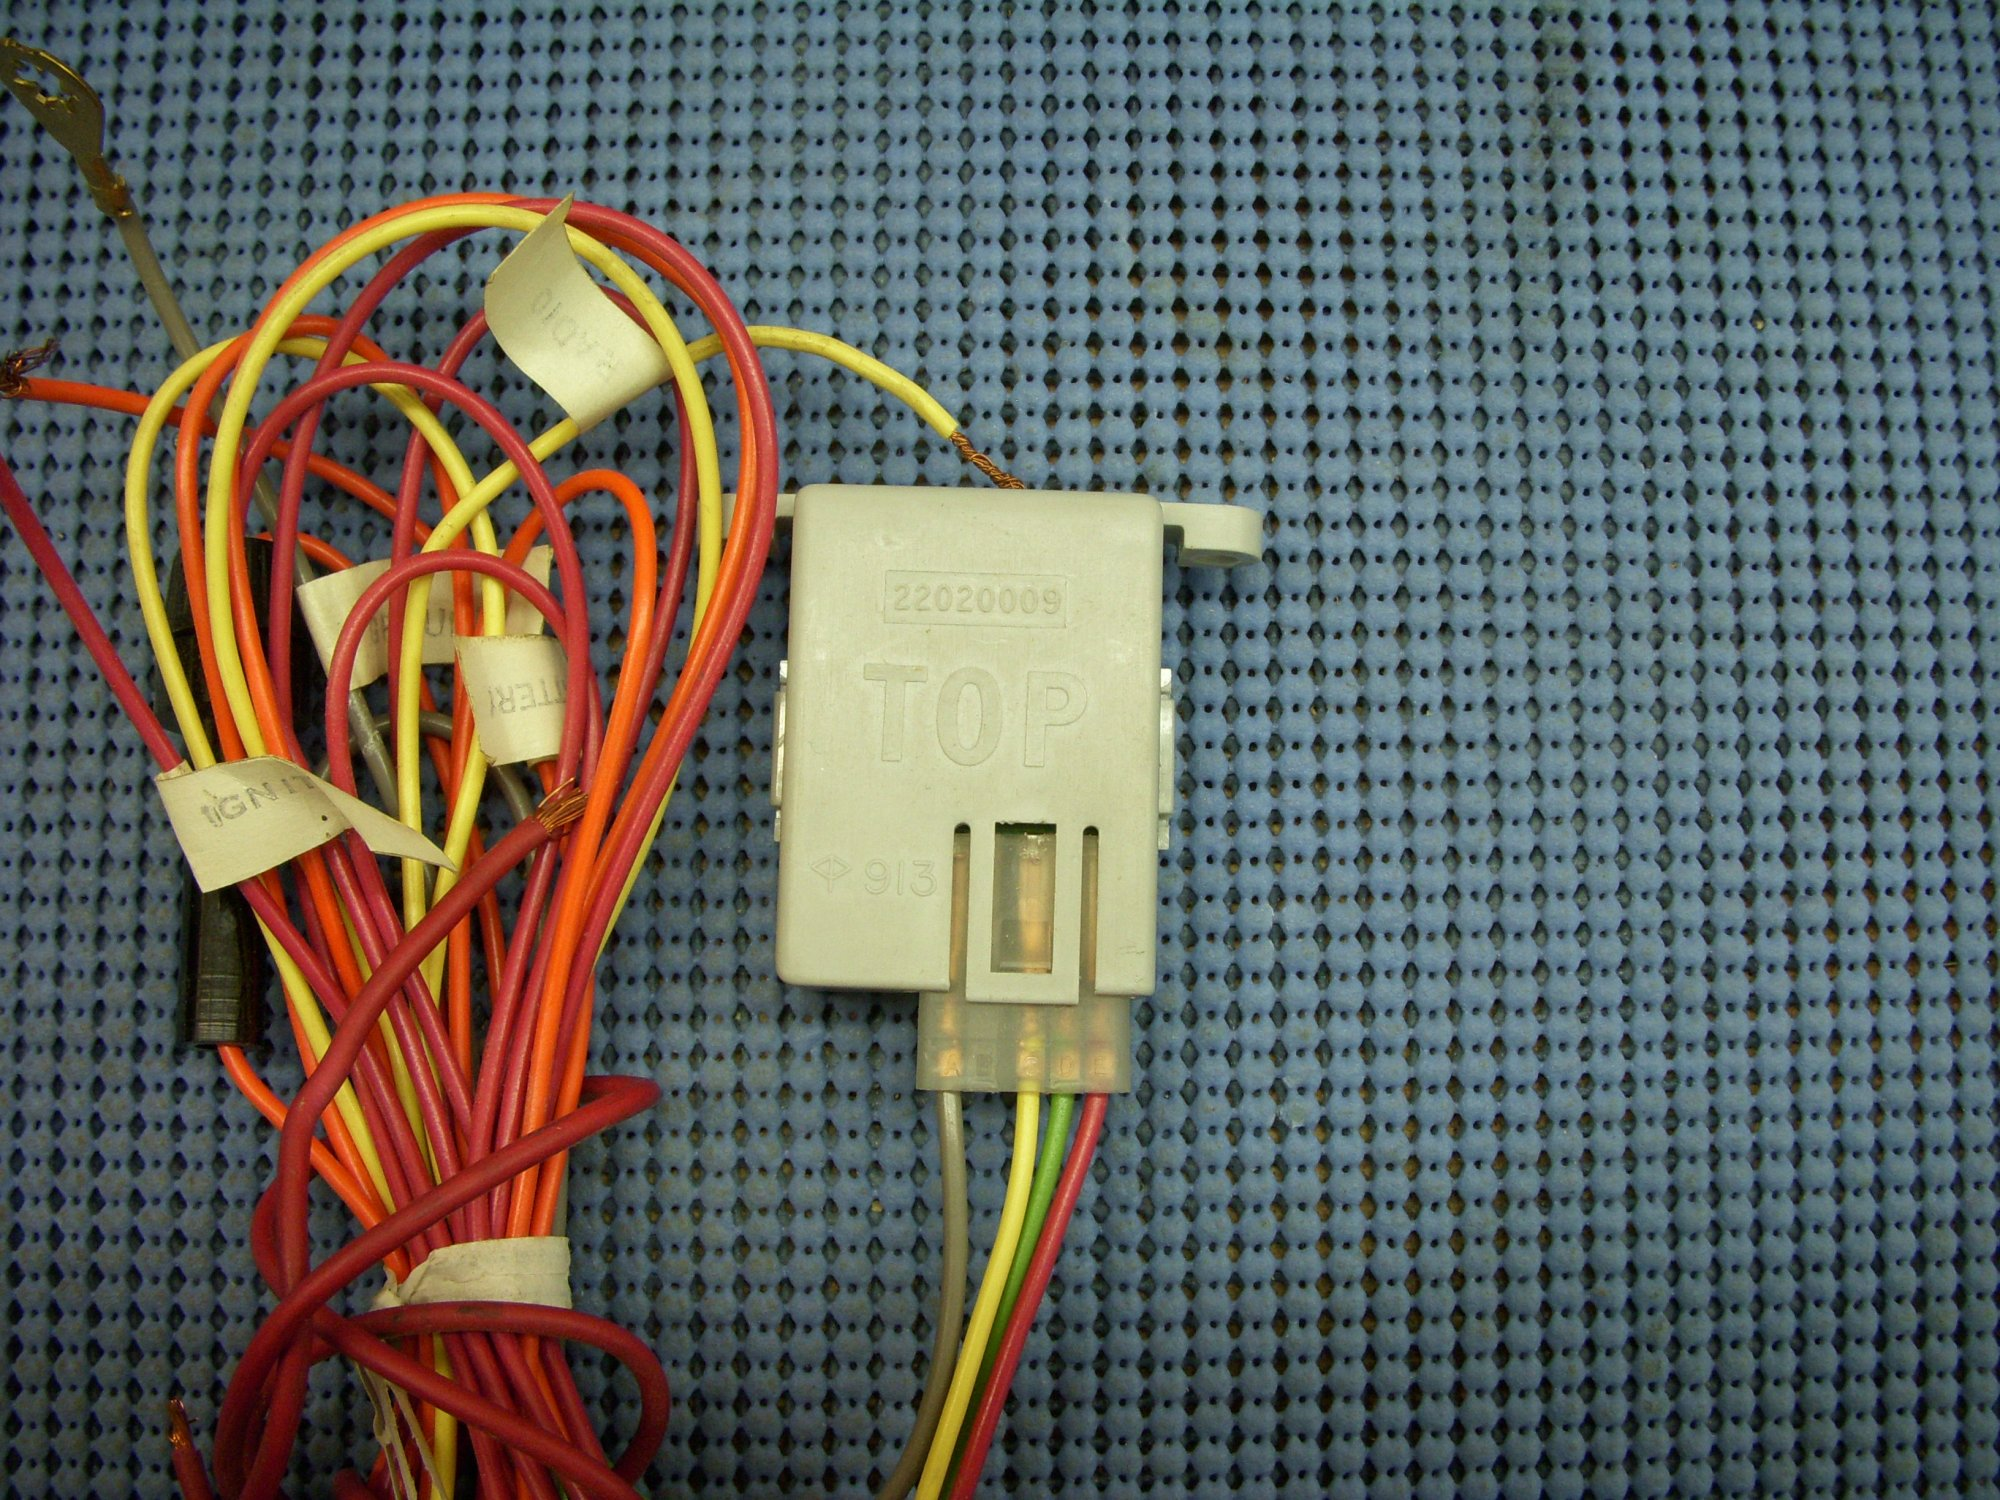 hight resolution of you re viewing 1978 1979 chevrolet power antenna relay with wiring harness nos 22020009 125 00